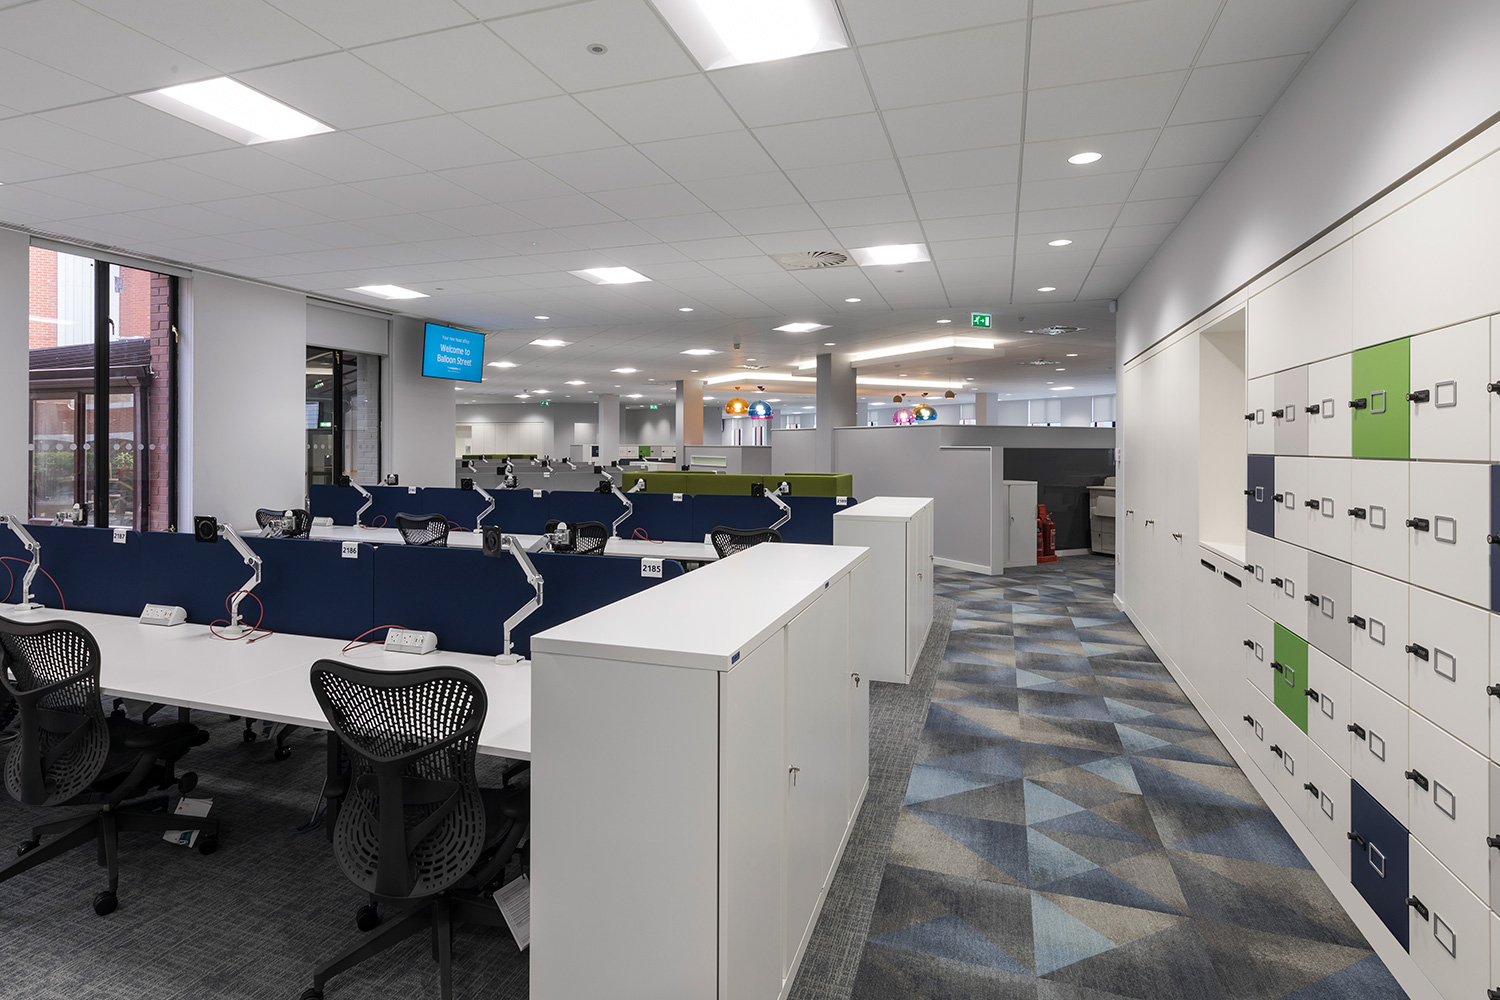 Office desks with blue and green lockers